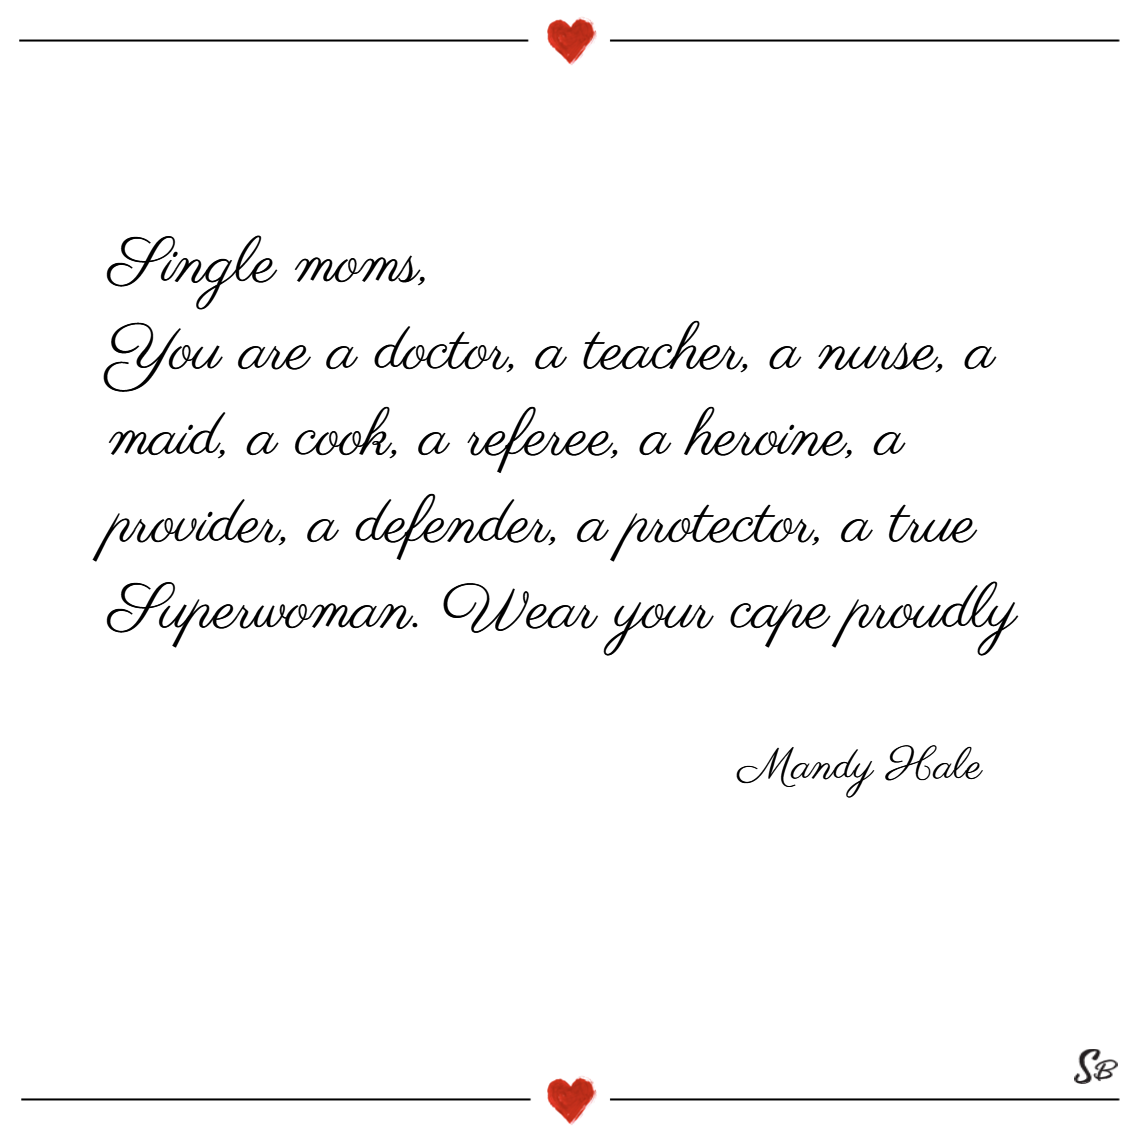 Single moms, you are a doctor, a teacher, a nurse, a maid, a cook, a referee, a heroine, a provider, a defender, a protector, a true superwoman. wear your cape proudly. – mandy hale single mom quotes